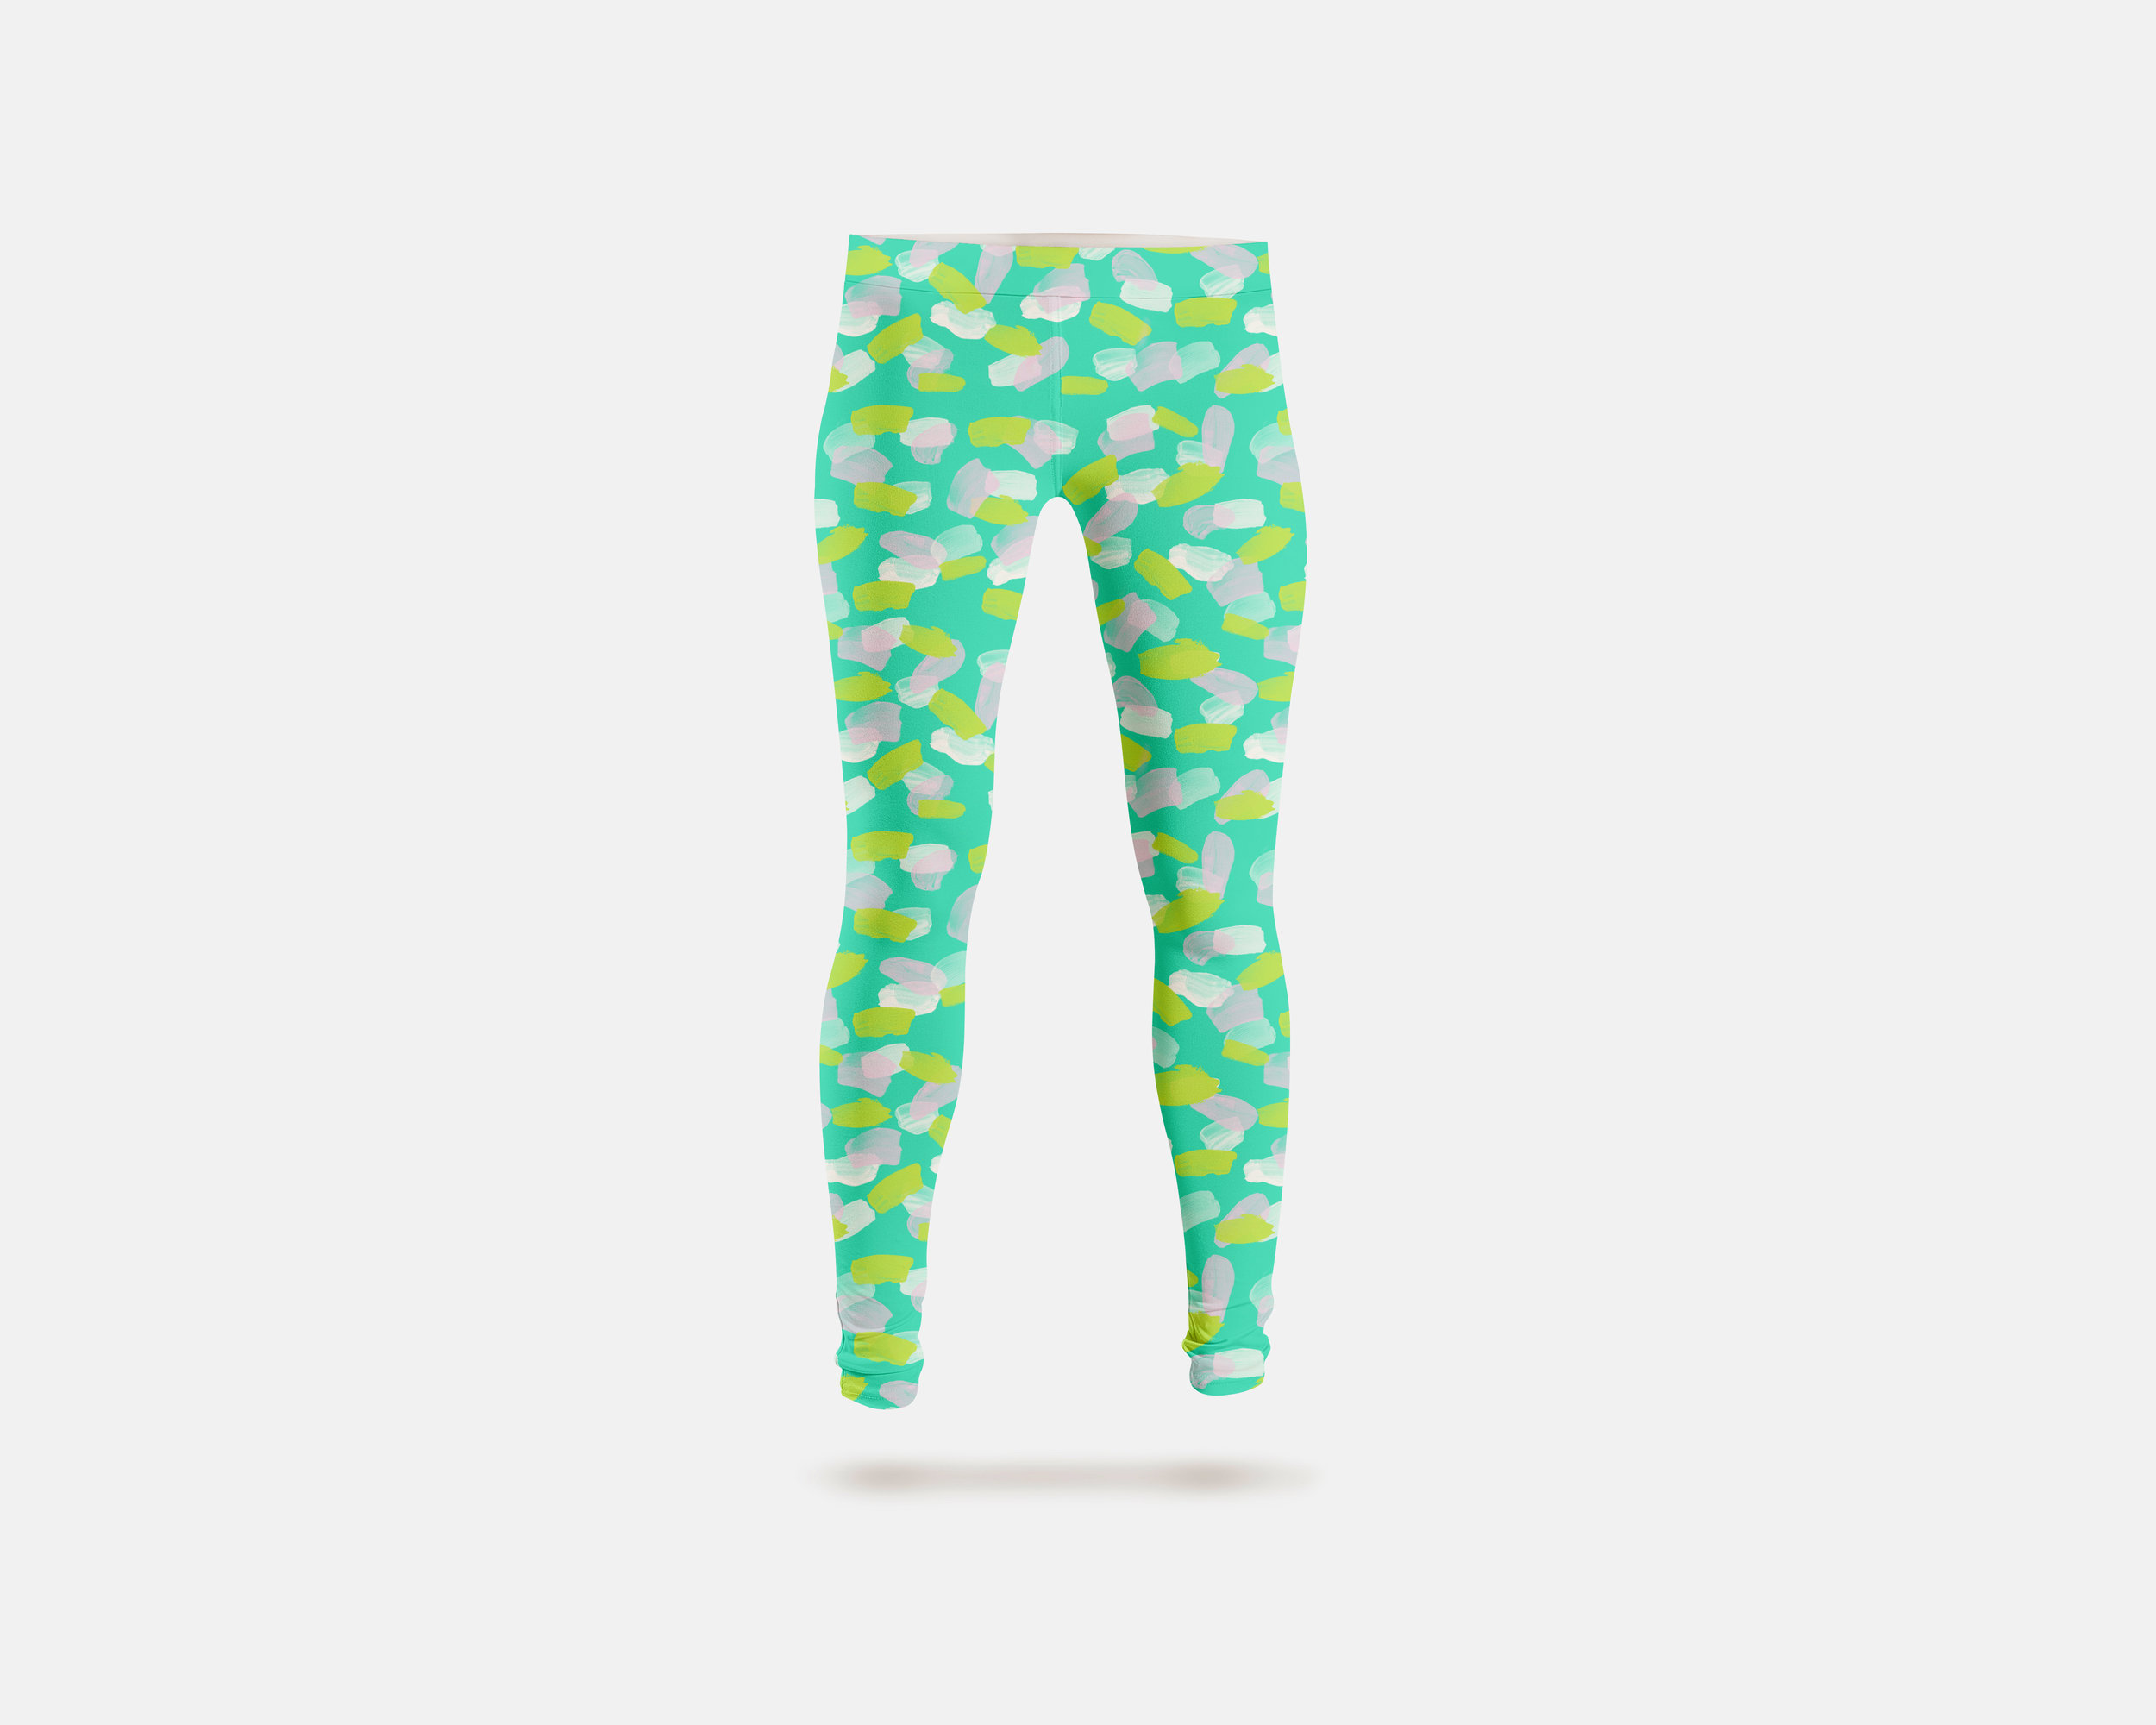 Dots and Blobs Leggings Mockup 2.jpg